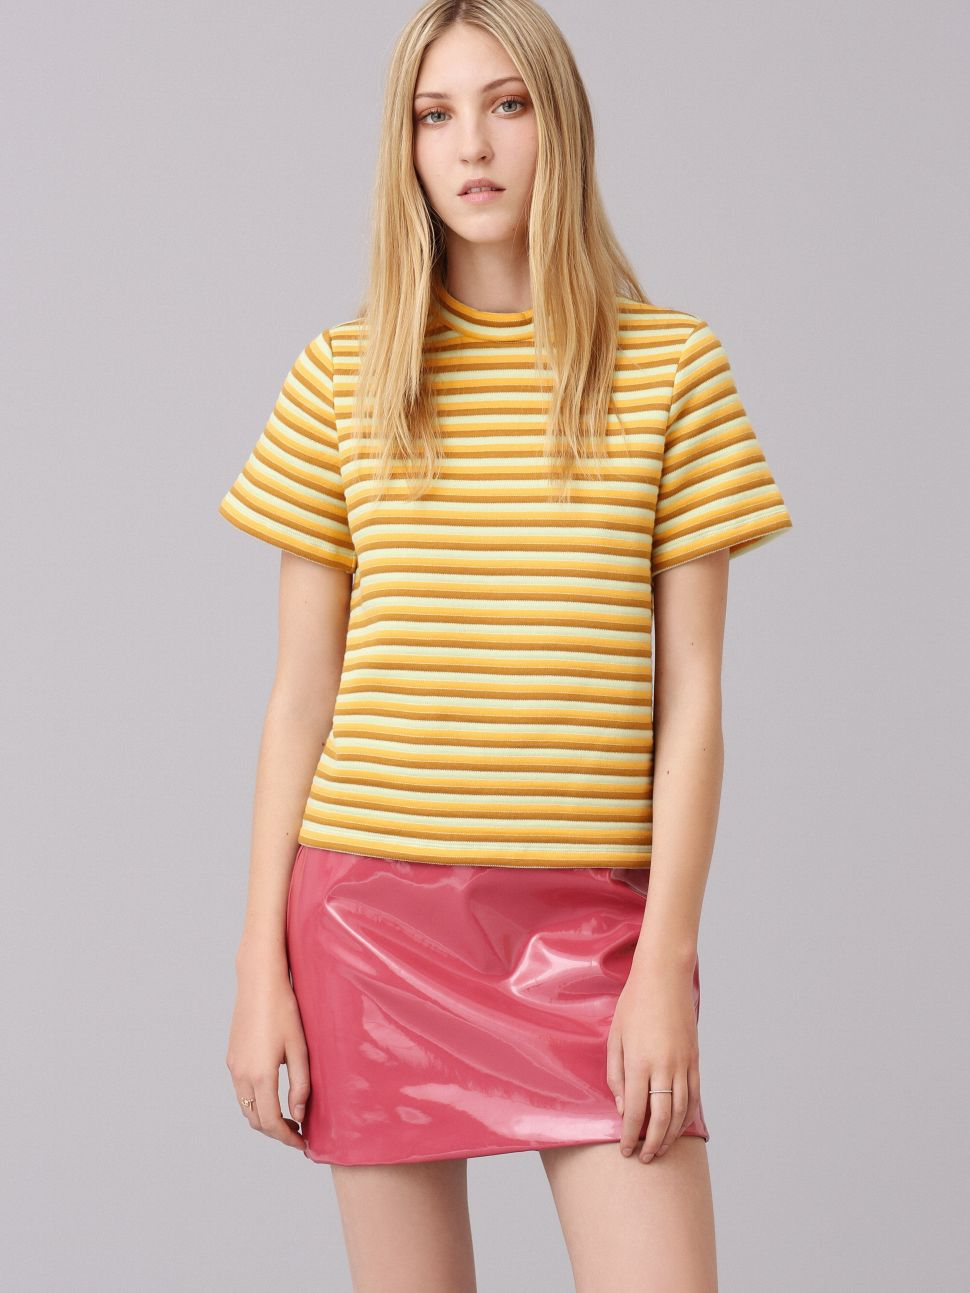 Topshop Cleverly Recycles Their Own Vintage Pieces